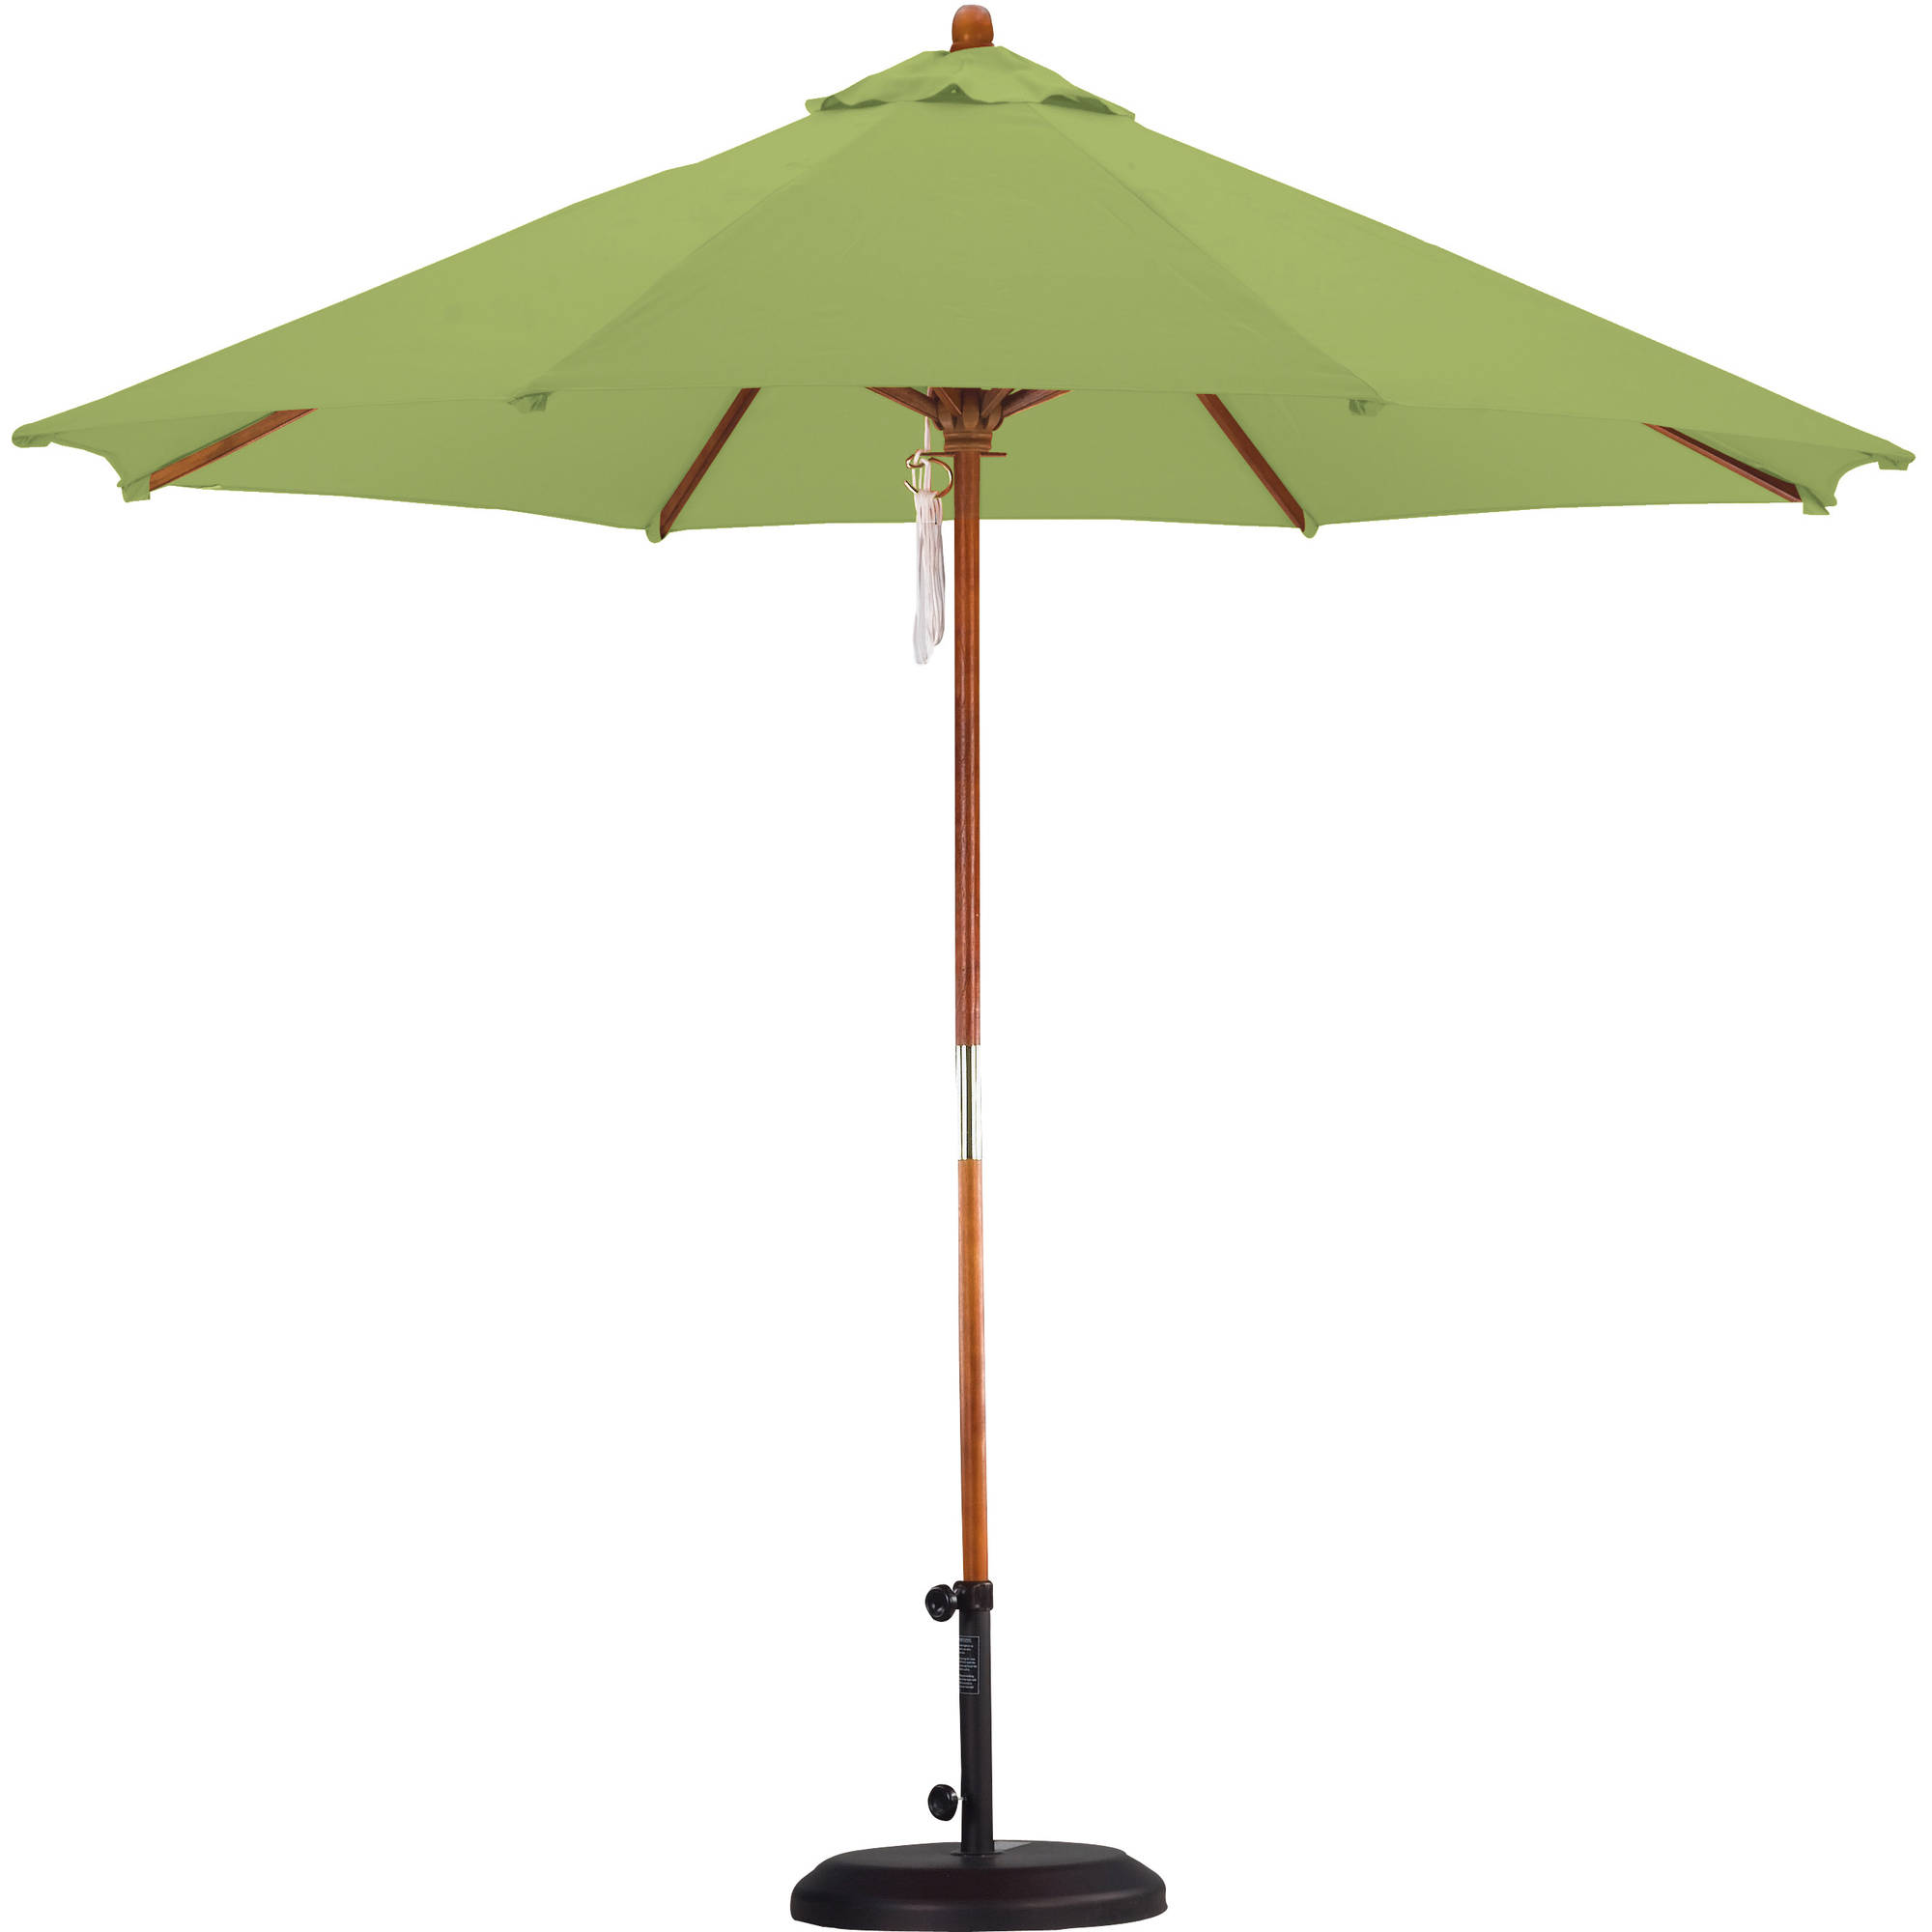 Astella 9' Wood Market Umbrella Pulley Open Hardwood, Polyester, Lime Green by Astella